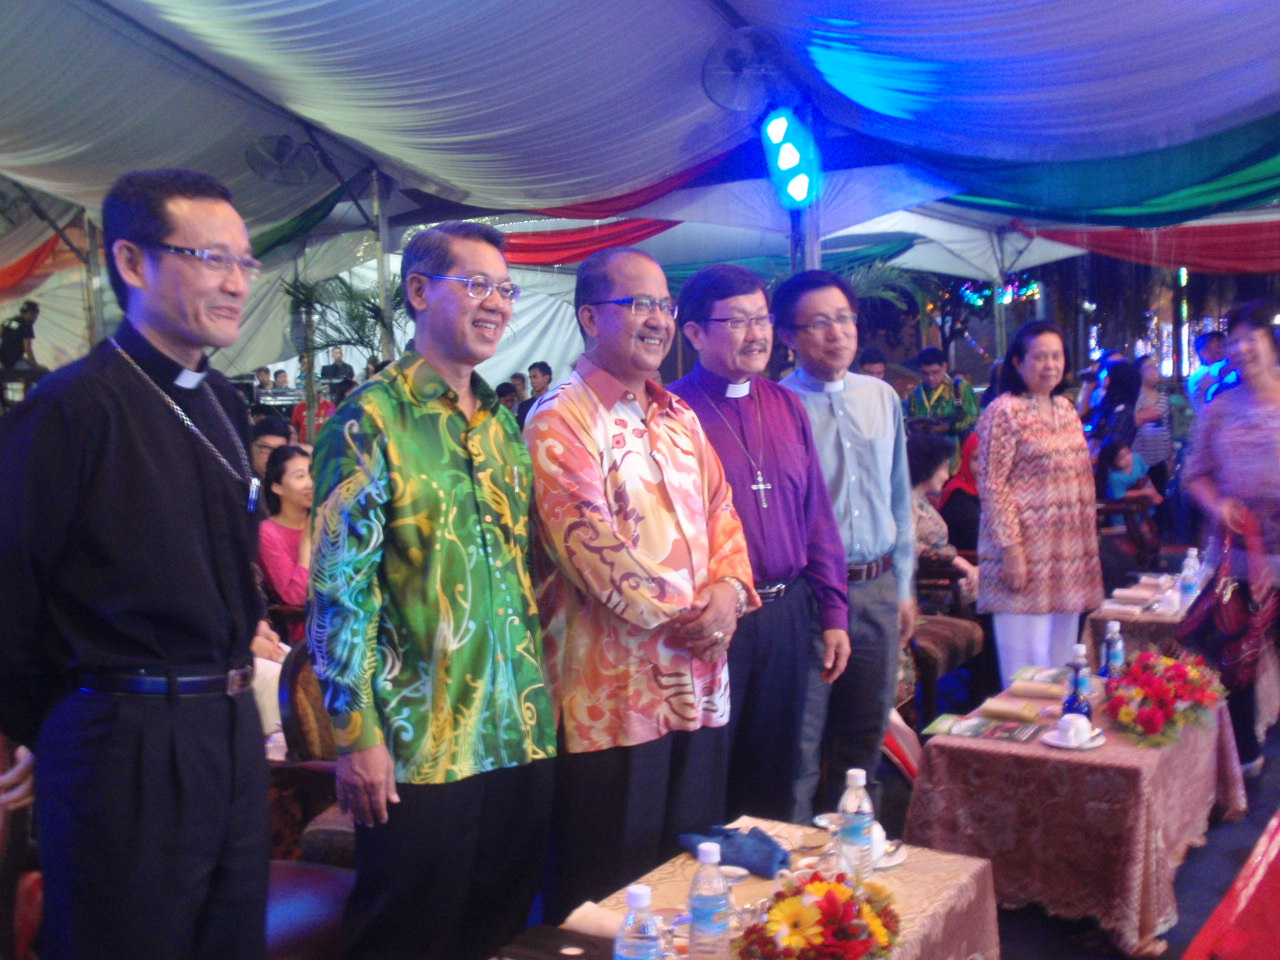 Abp Wong (L) stands along with the other dignitaries on the opening night.